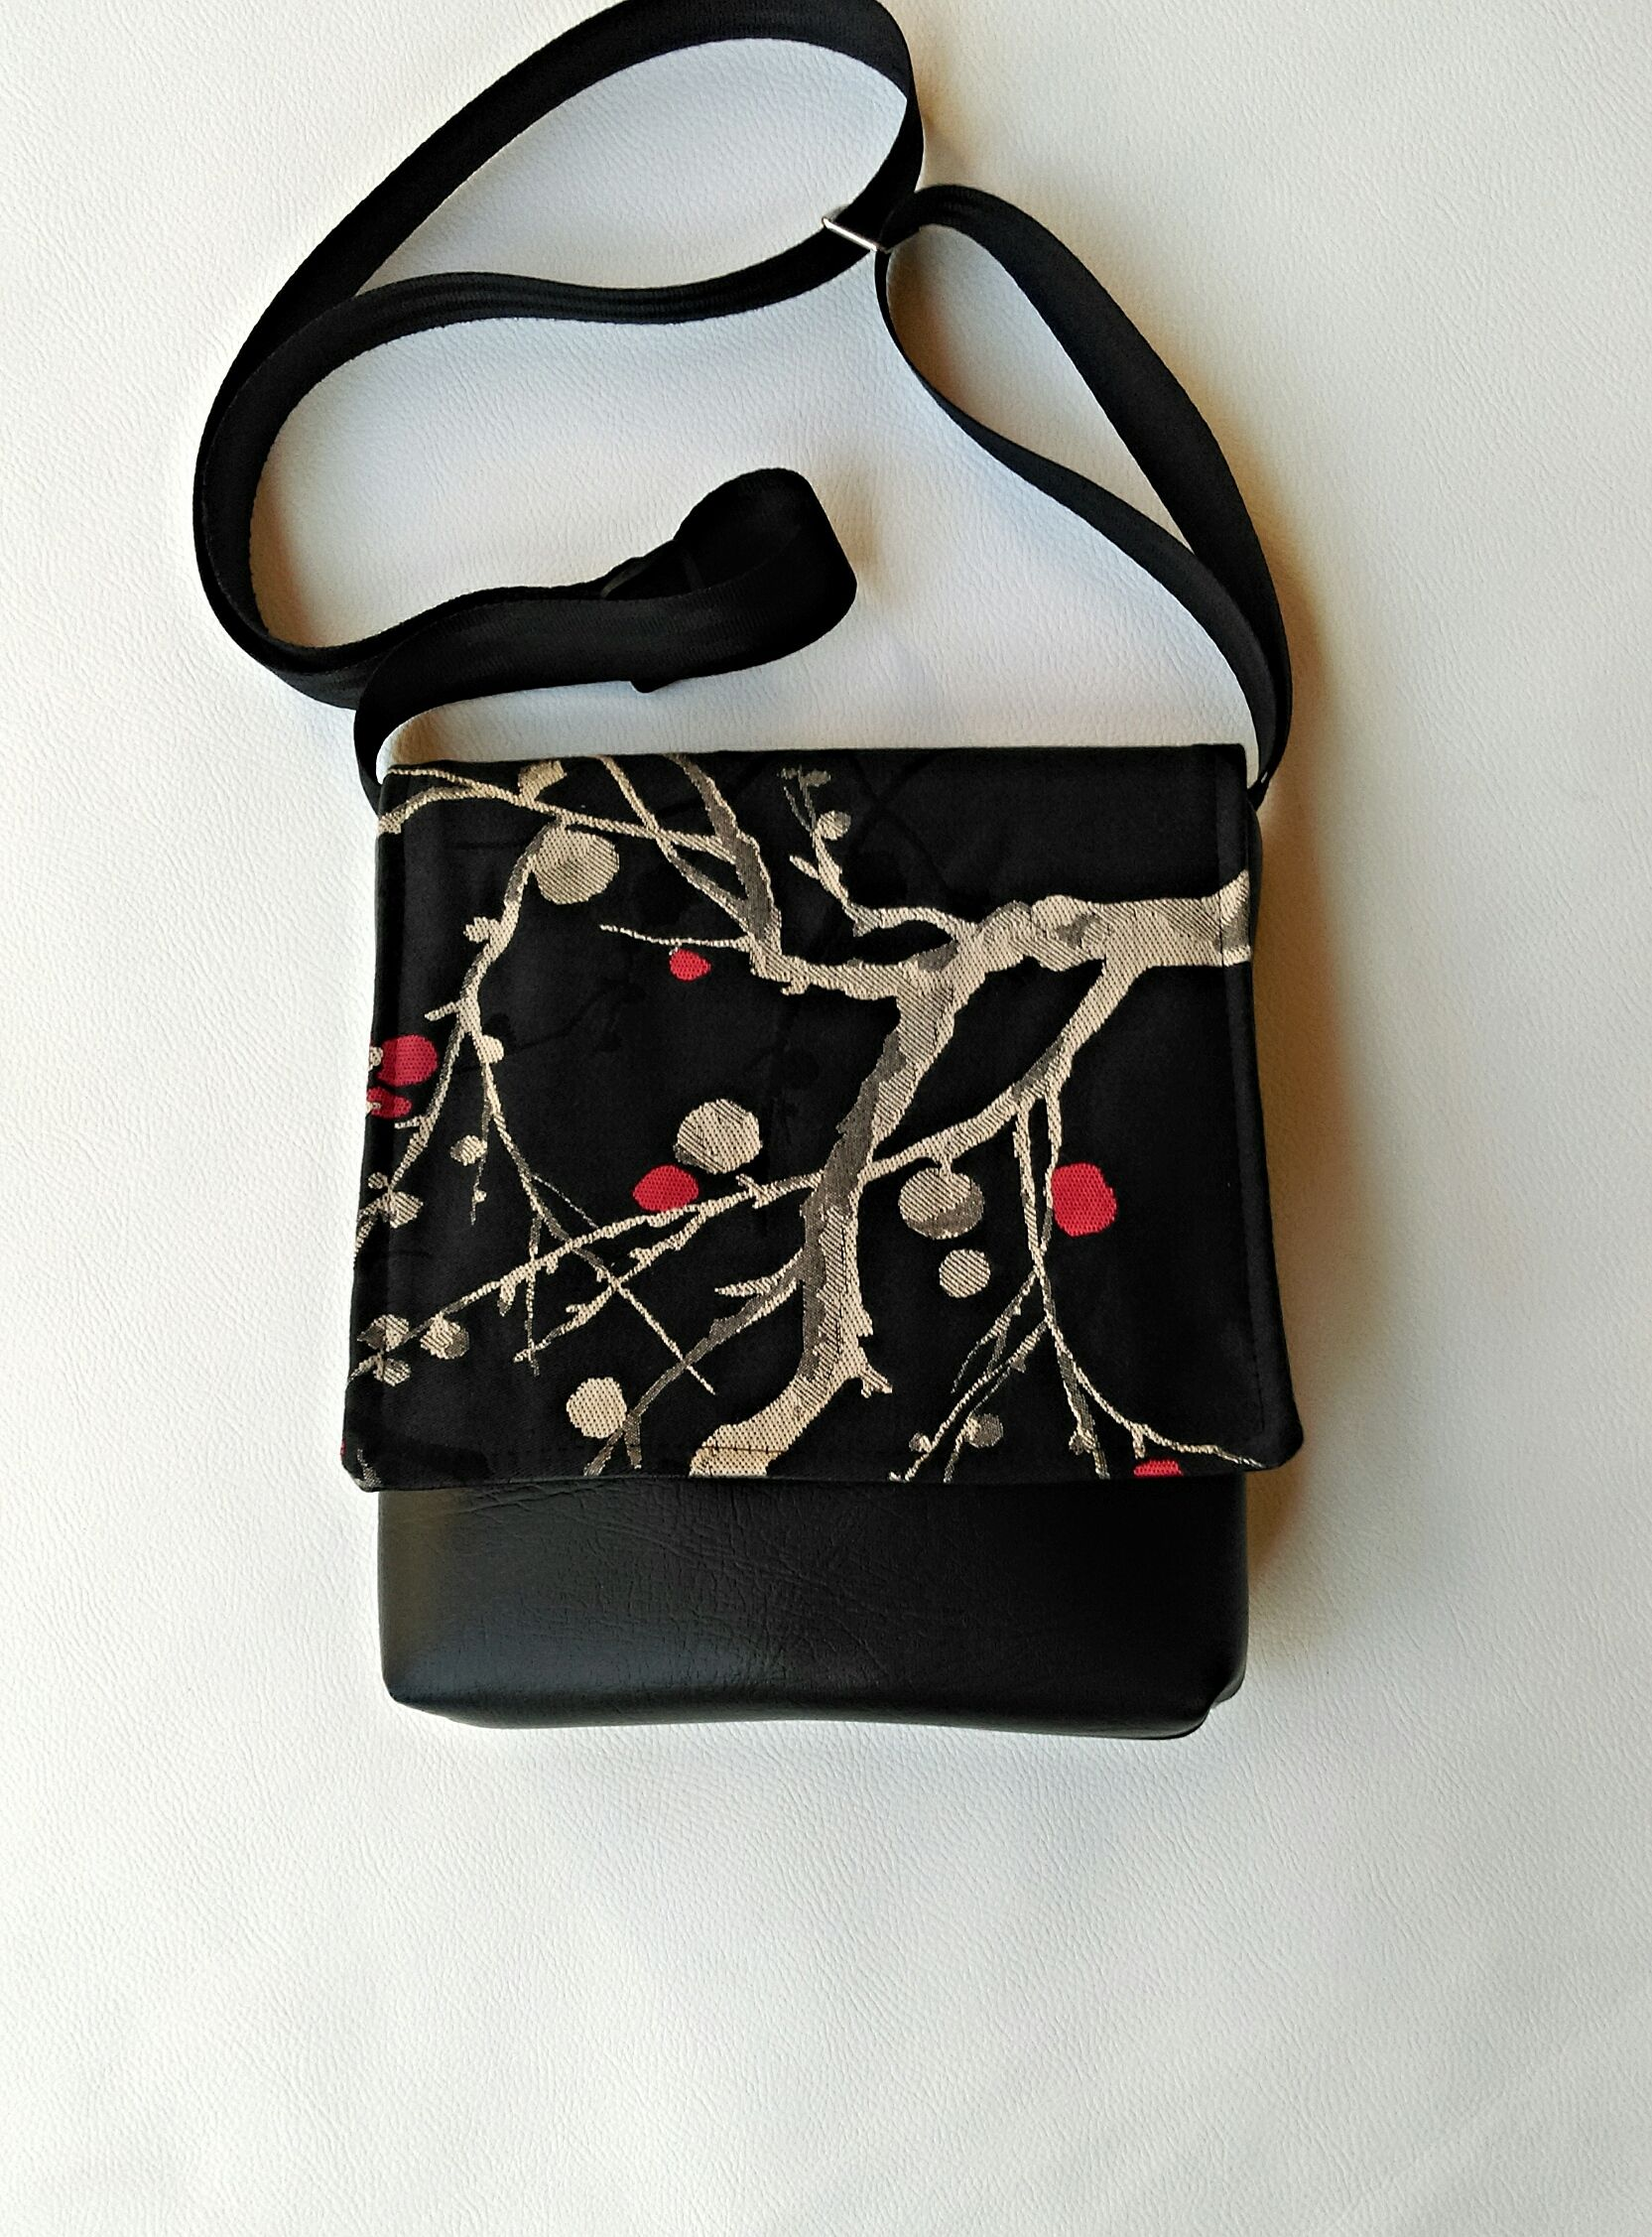 "Japanese""Kyoto"" medium weight decor fabric feature flap messenger bag. Unique one of a kind fabric placement. Only four in this series!"